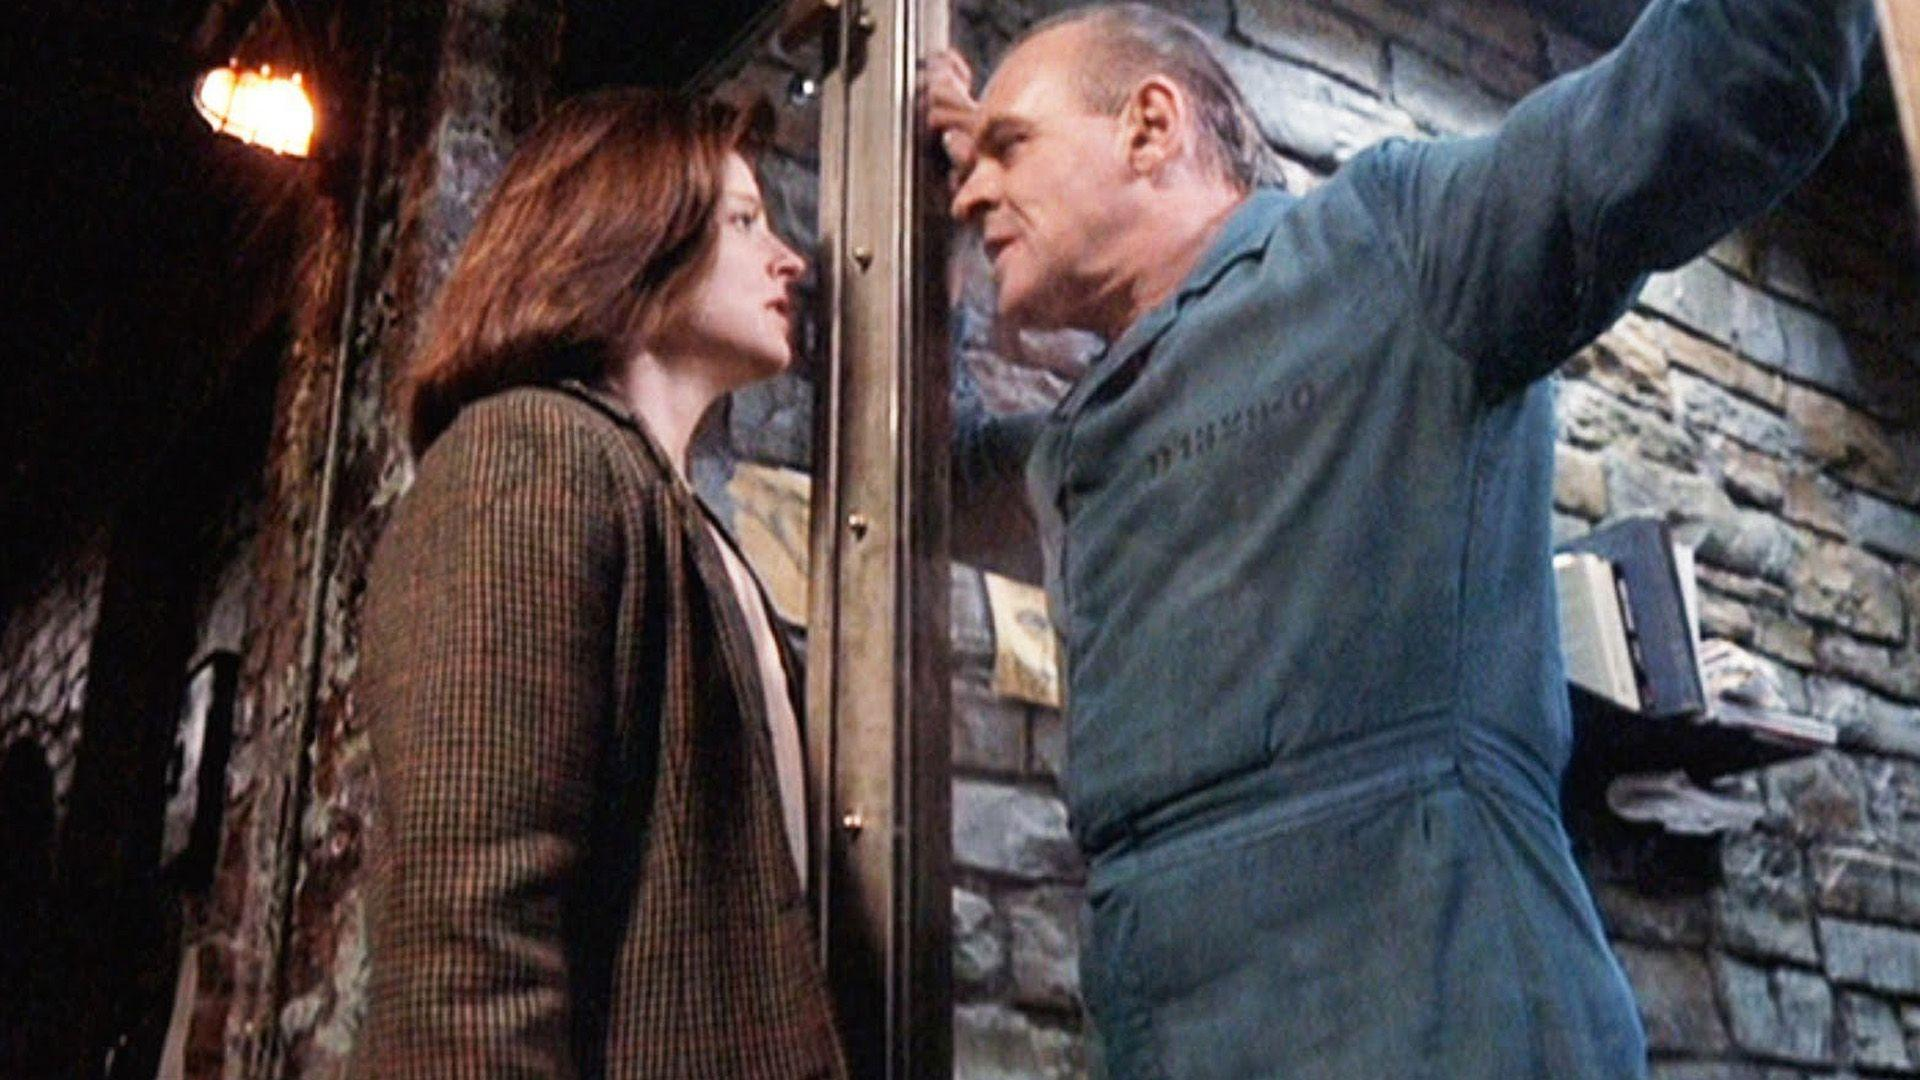 THE SILENCE OF THE LAMBS Recut as a Romantic Comedy — GeekTyrant